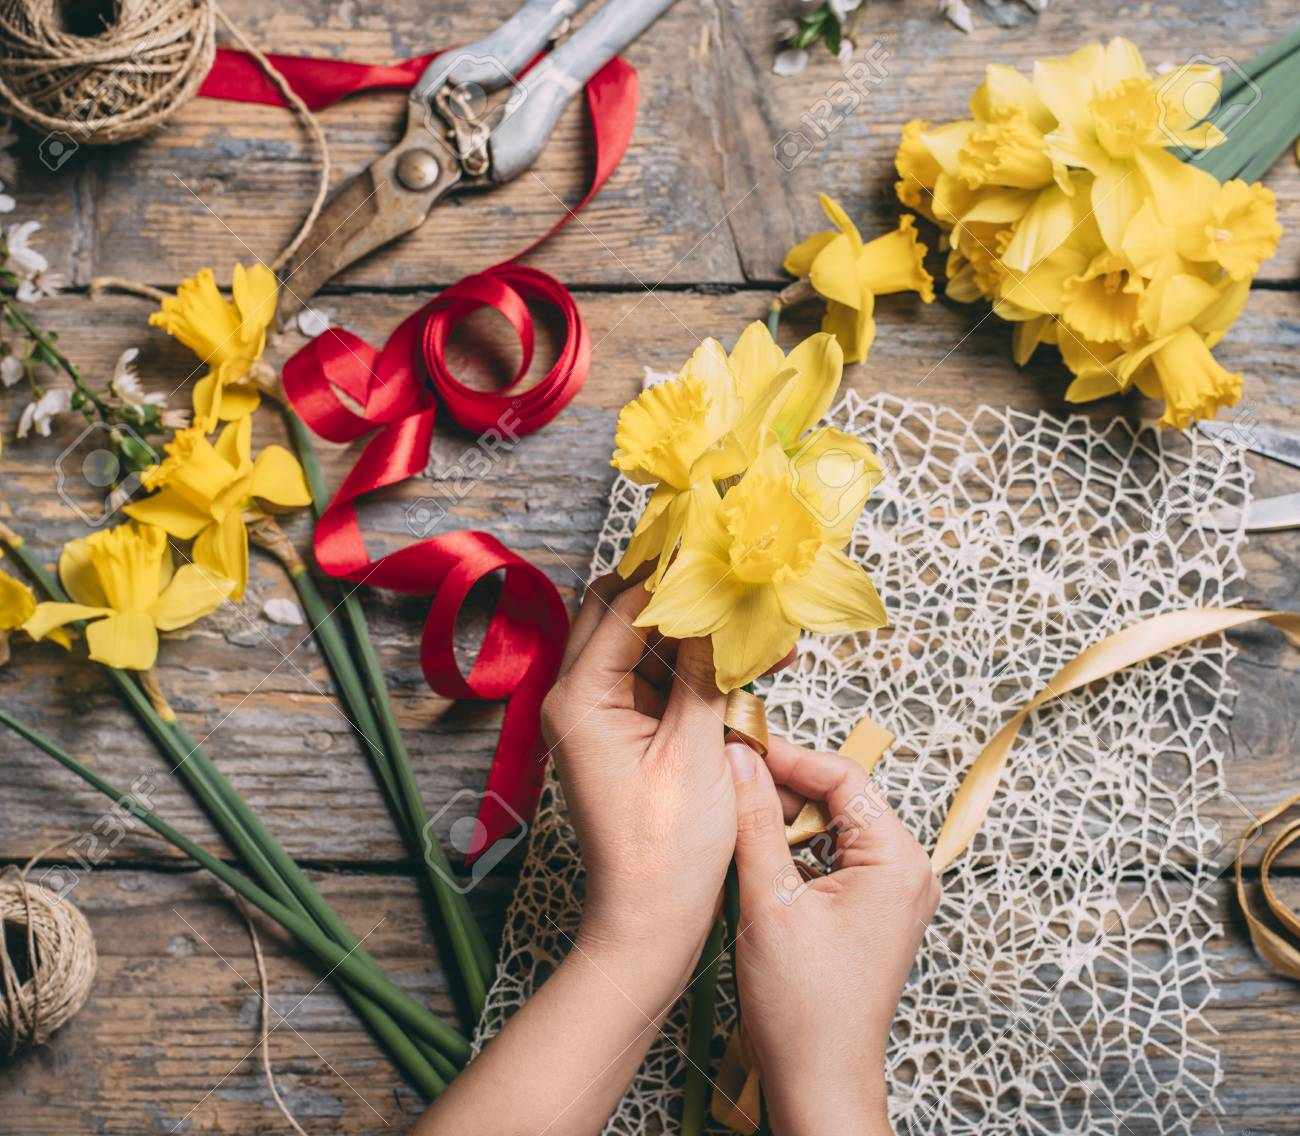 Top View Of Florist Hands Making Flower Bouquet With Narcissus